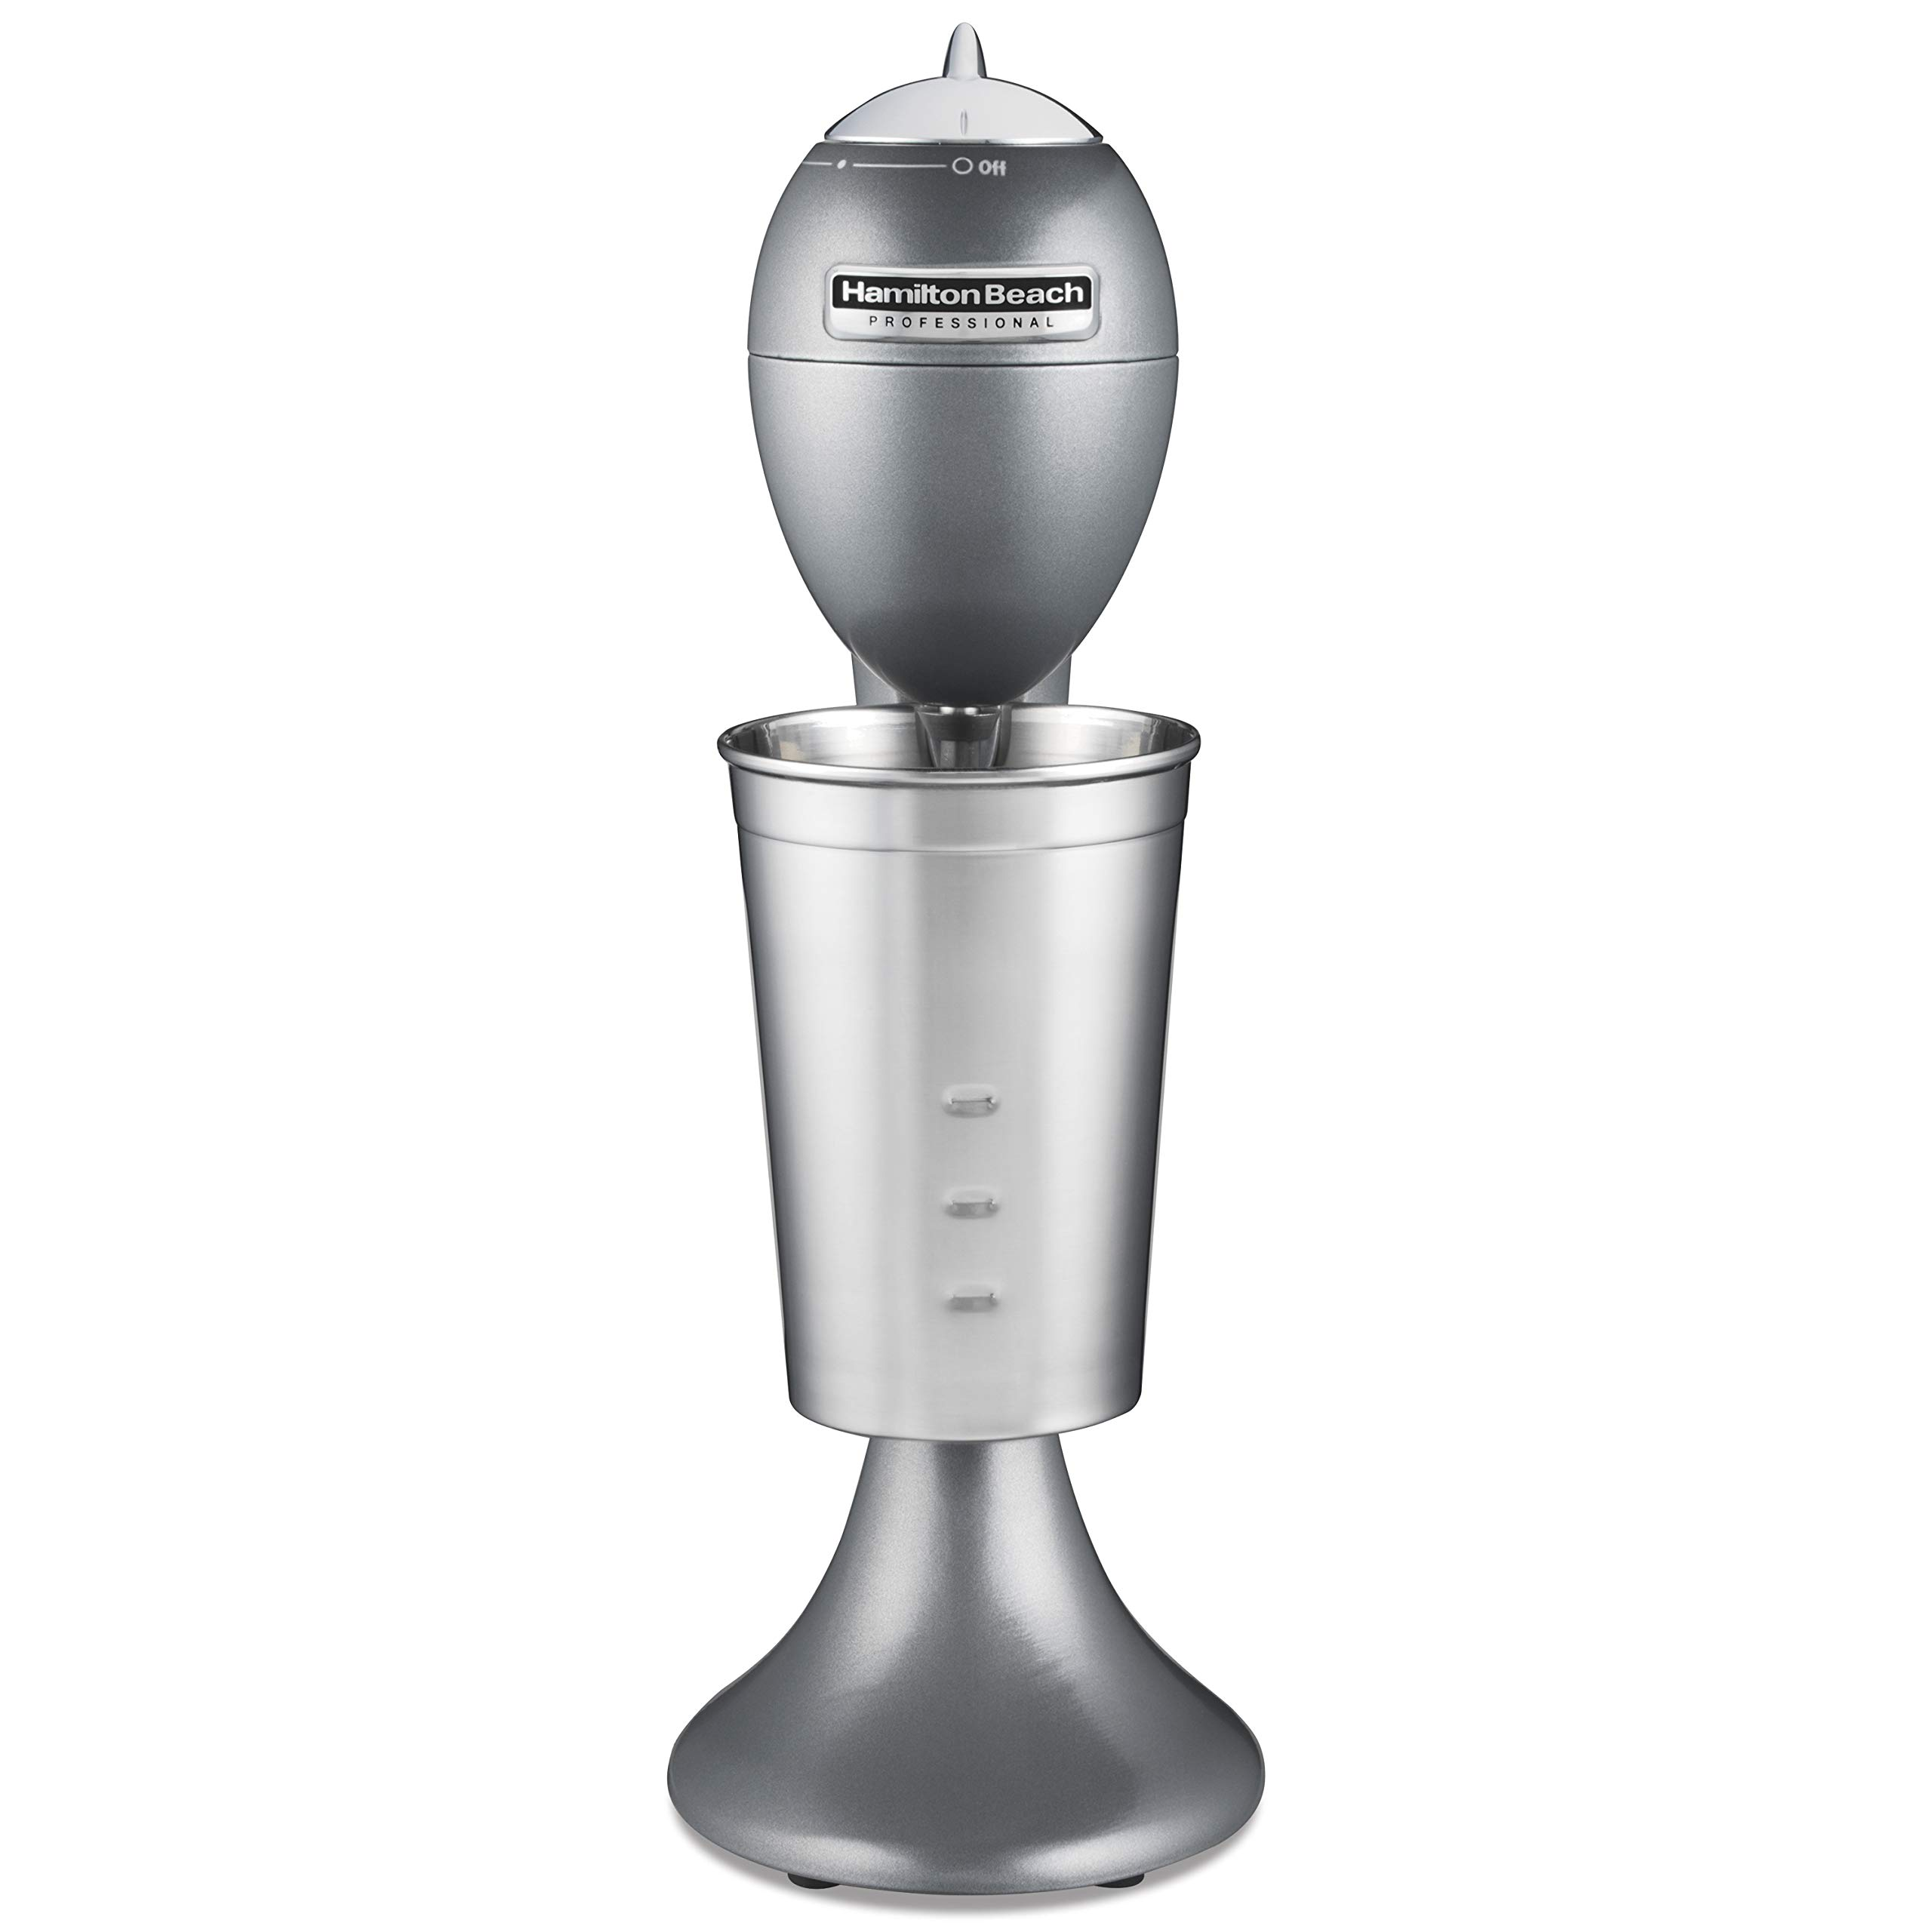 Hamilton Beach Pro Retro Die-Cast Mixer for Milkshakes, Soda Fountain Drinks, Protein Shakes, Whipping Omelets and Pancake Batter, 28 Oz Cup (65120), Gray